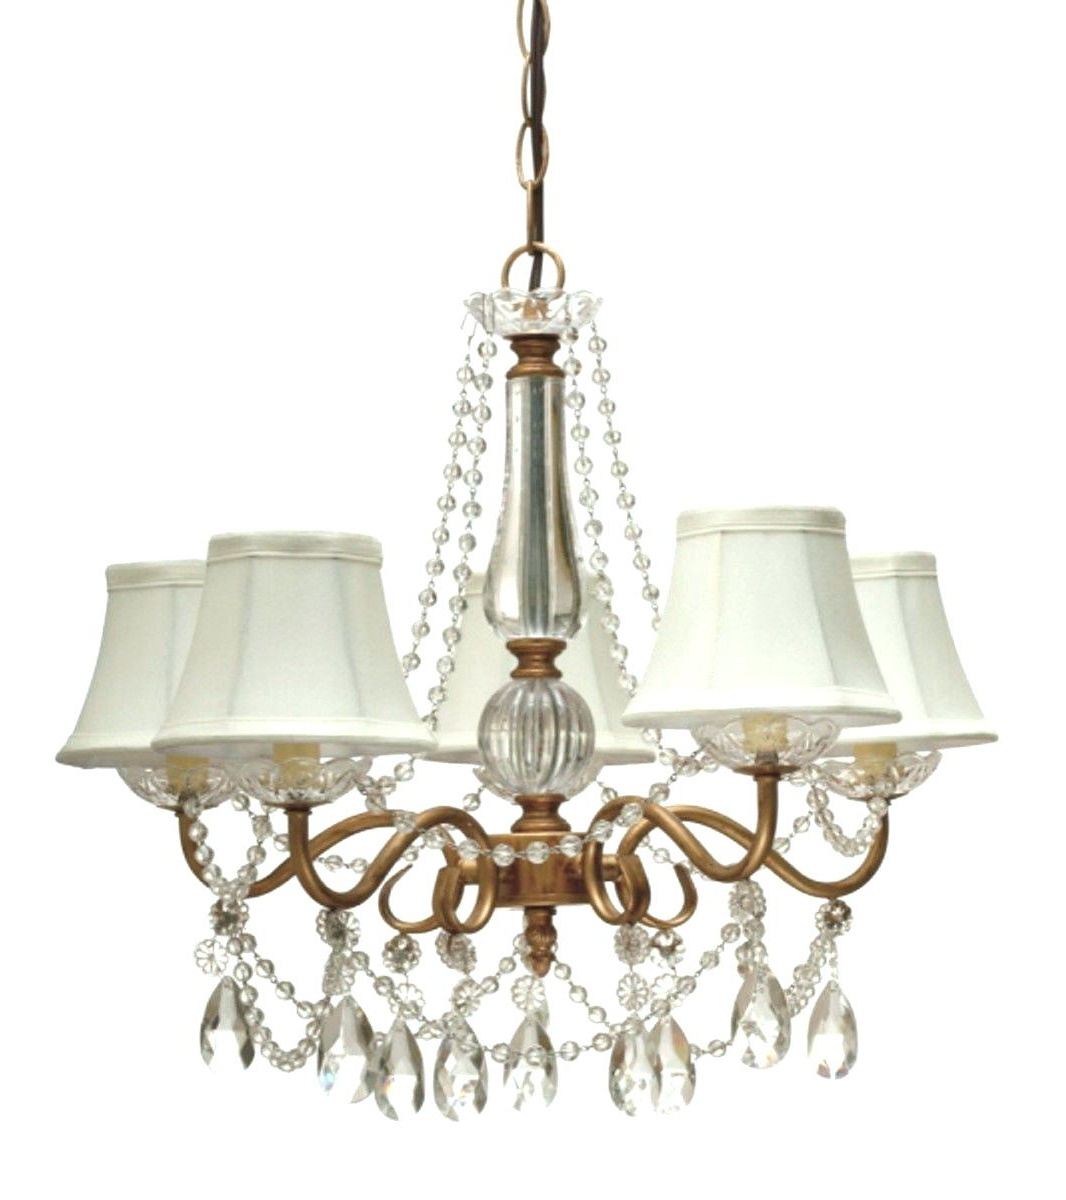 Popular Lampshade Chandeliers Intended For Light : Chandelier Fabric Sophia Crystal With White Shade W X H (View 17 of 20)